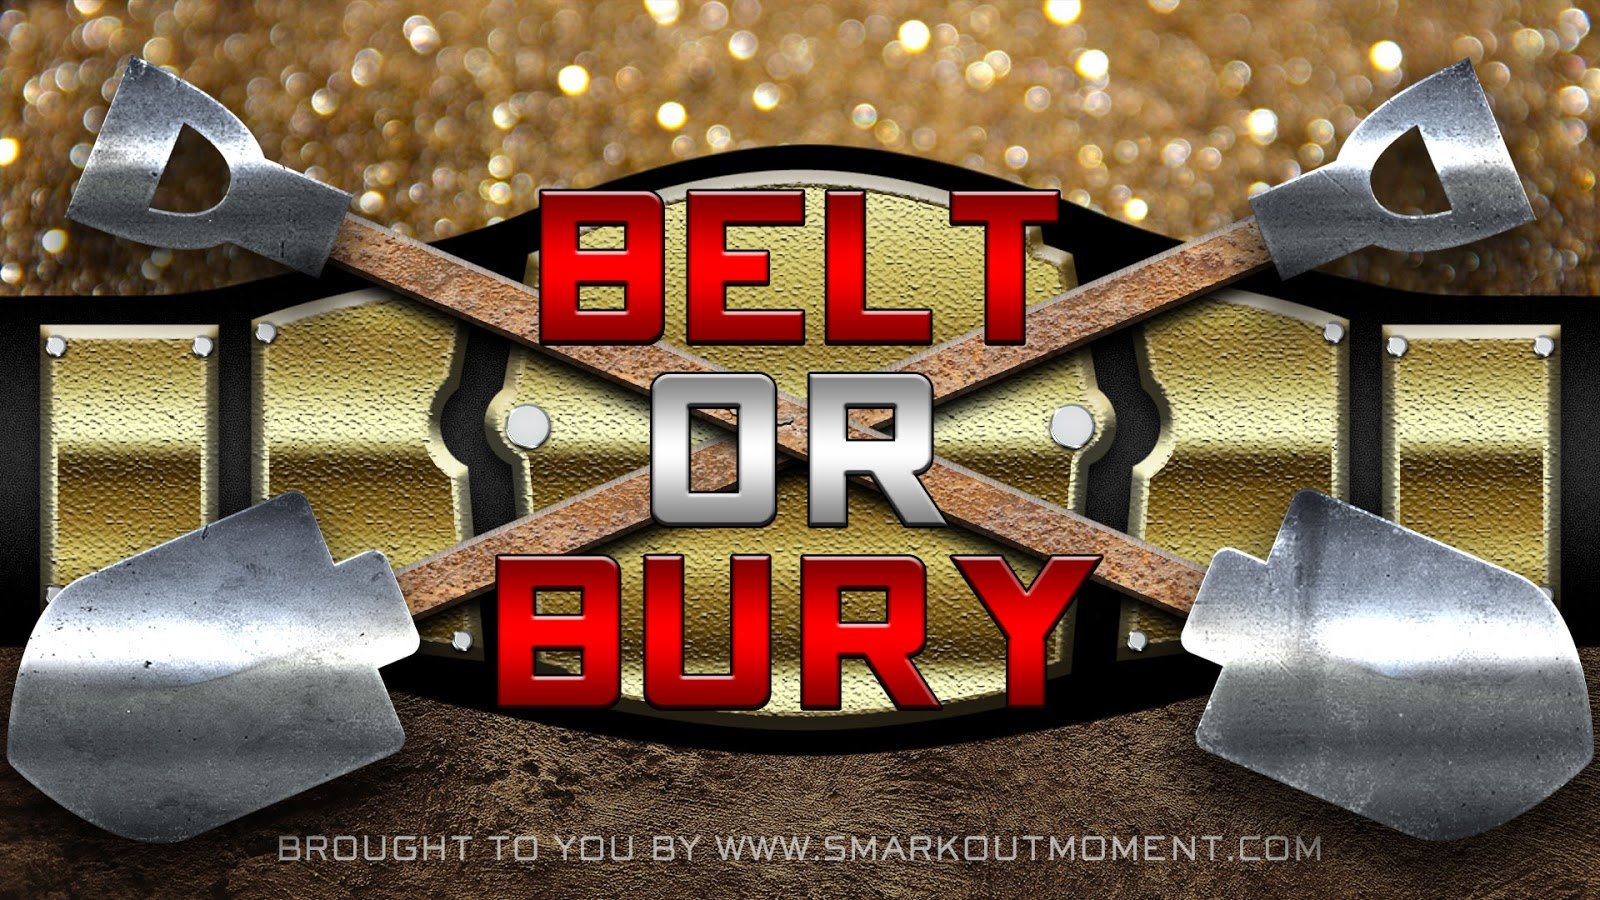 Belt or Bury Kalisto wins WWE Championship